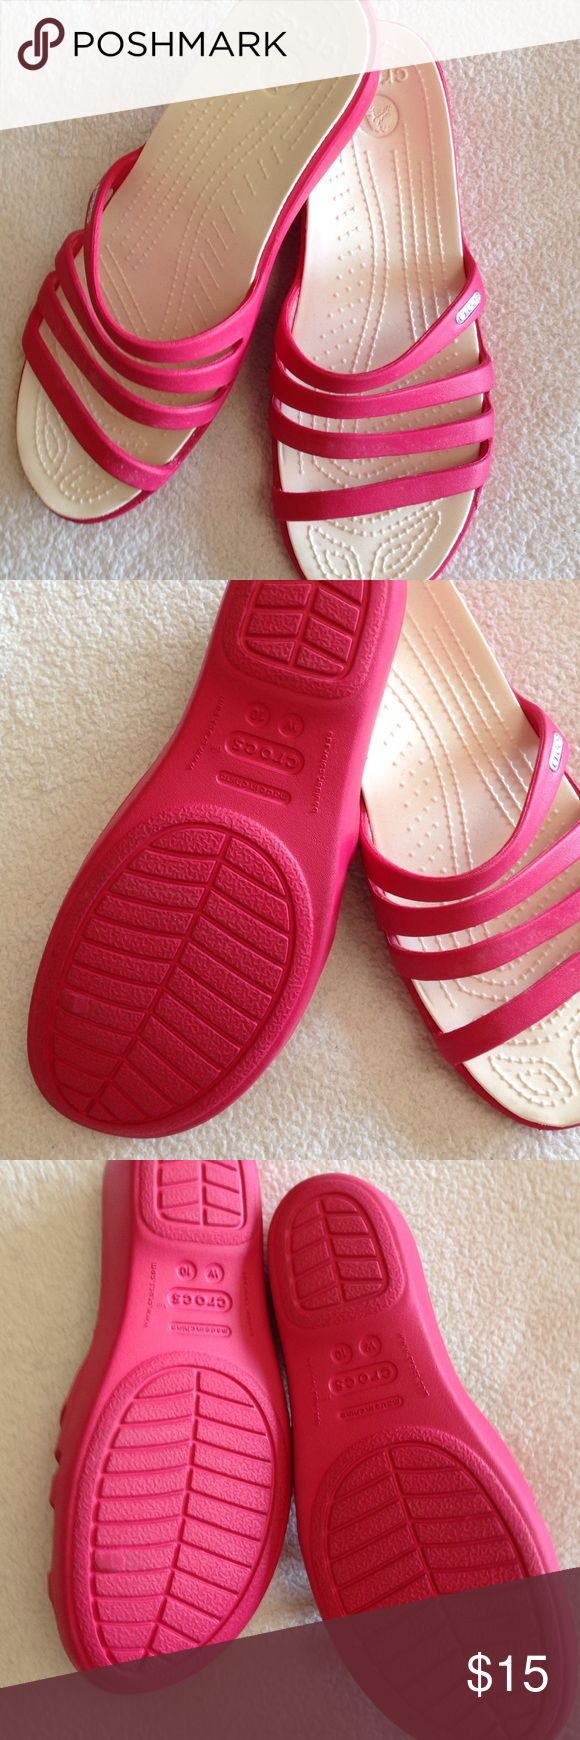 Woman's size 10 CROCS Womans size 10 pink Crocs - ordered online at Crocs store just wore around house to try out. In great condition.  Not flats Crocs Shoes Sandals